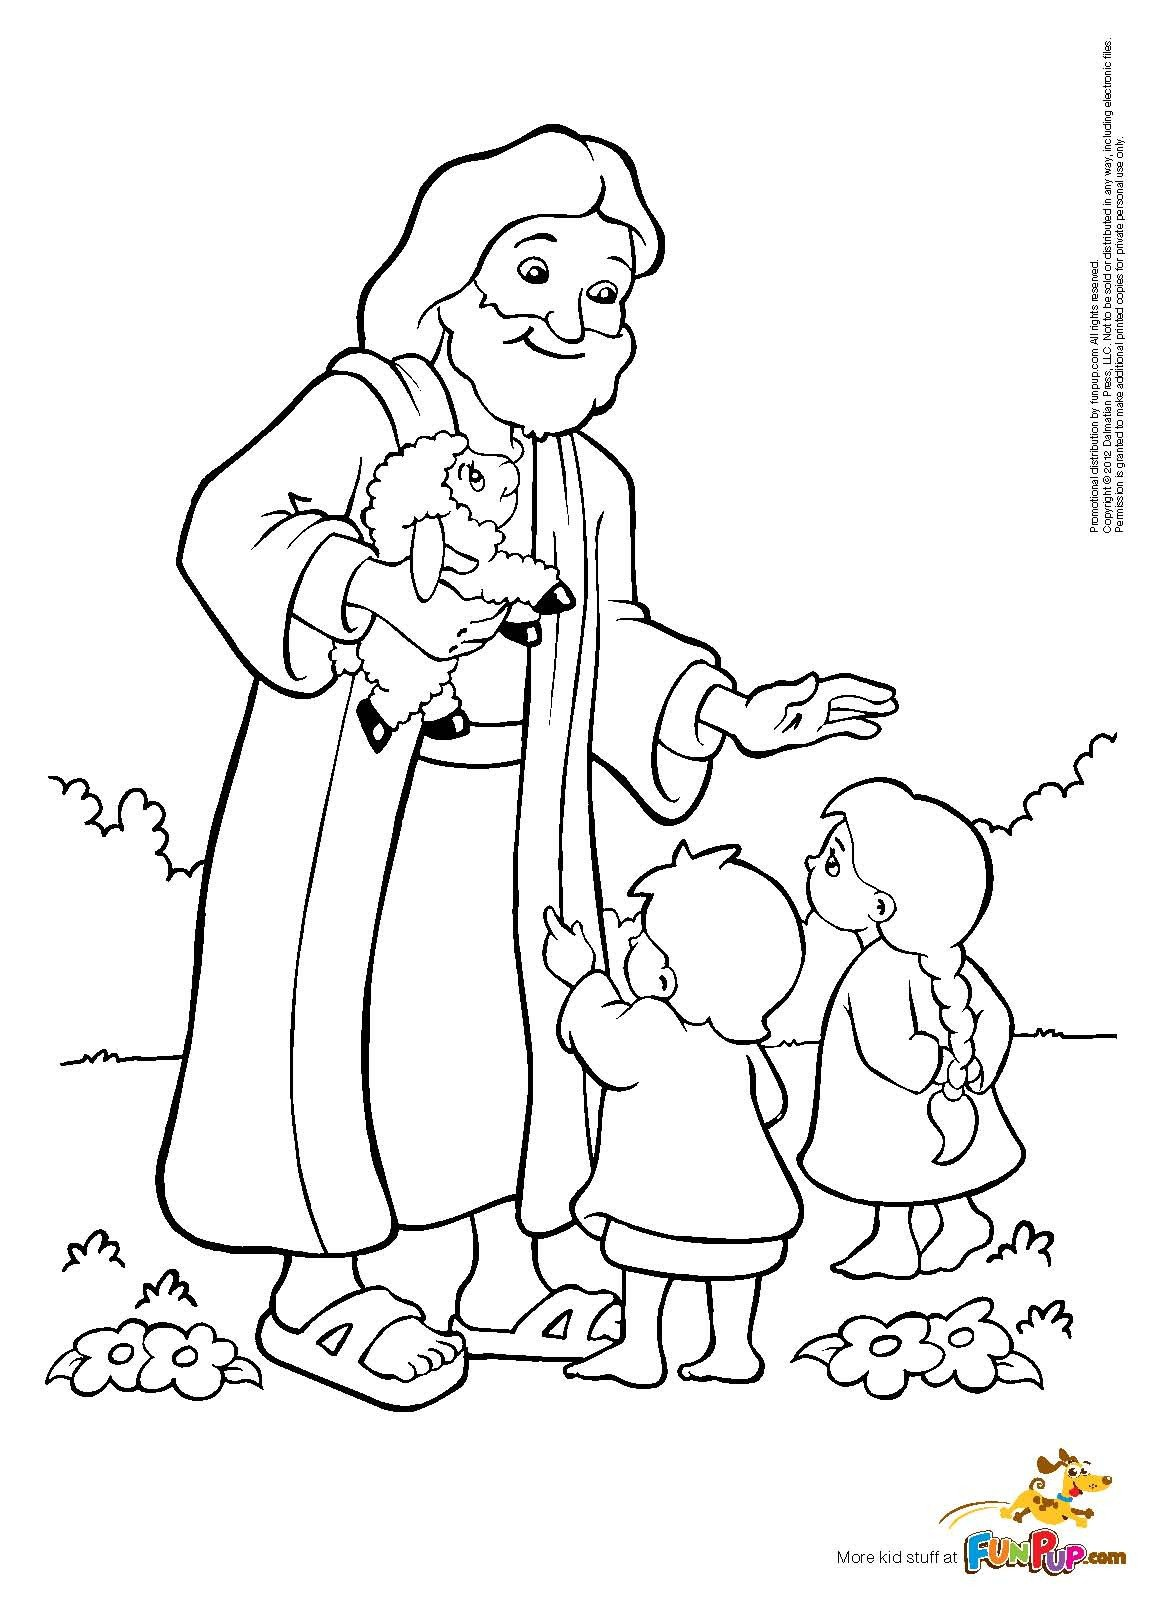 Amazing Coloring Pages Of Jesus 96 With Additional Line Drawings